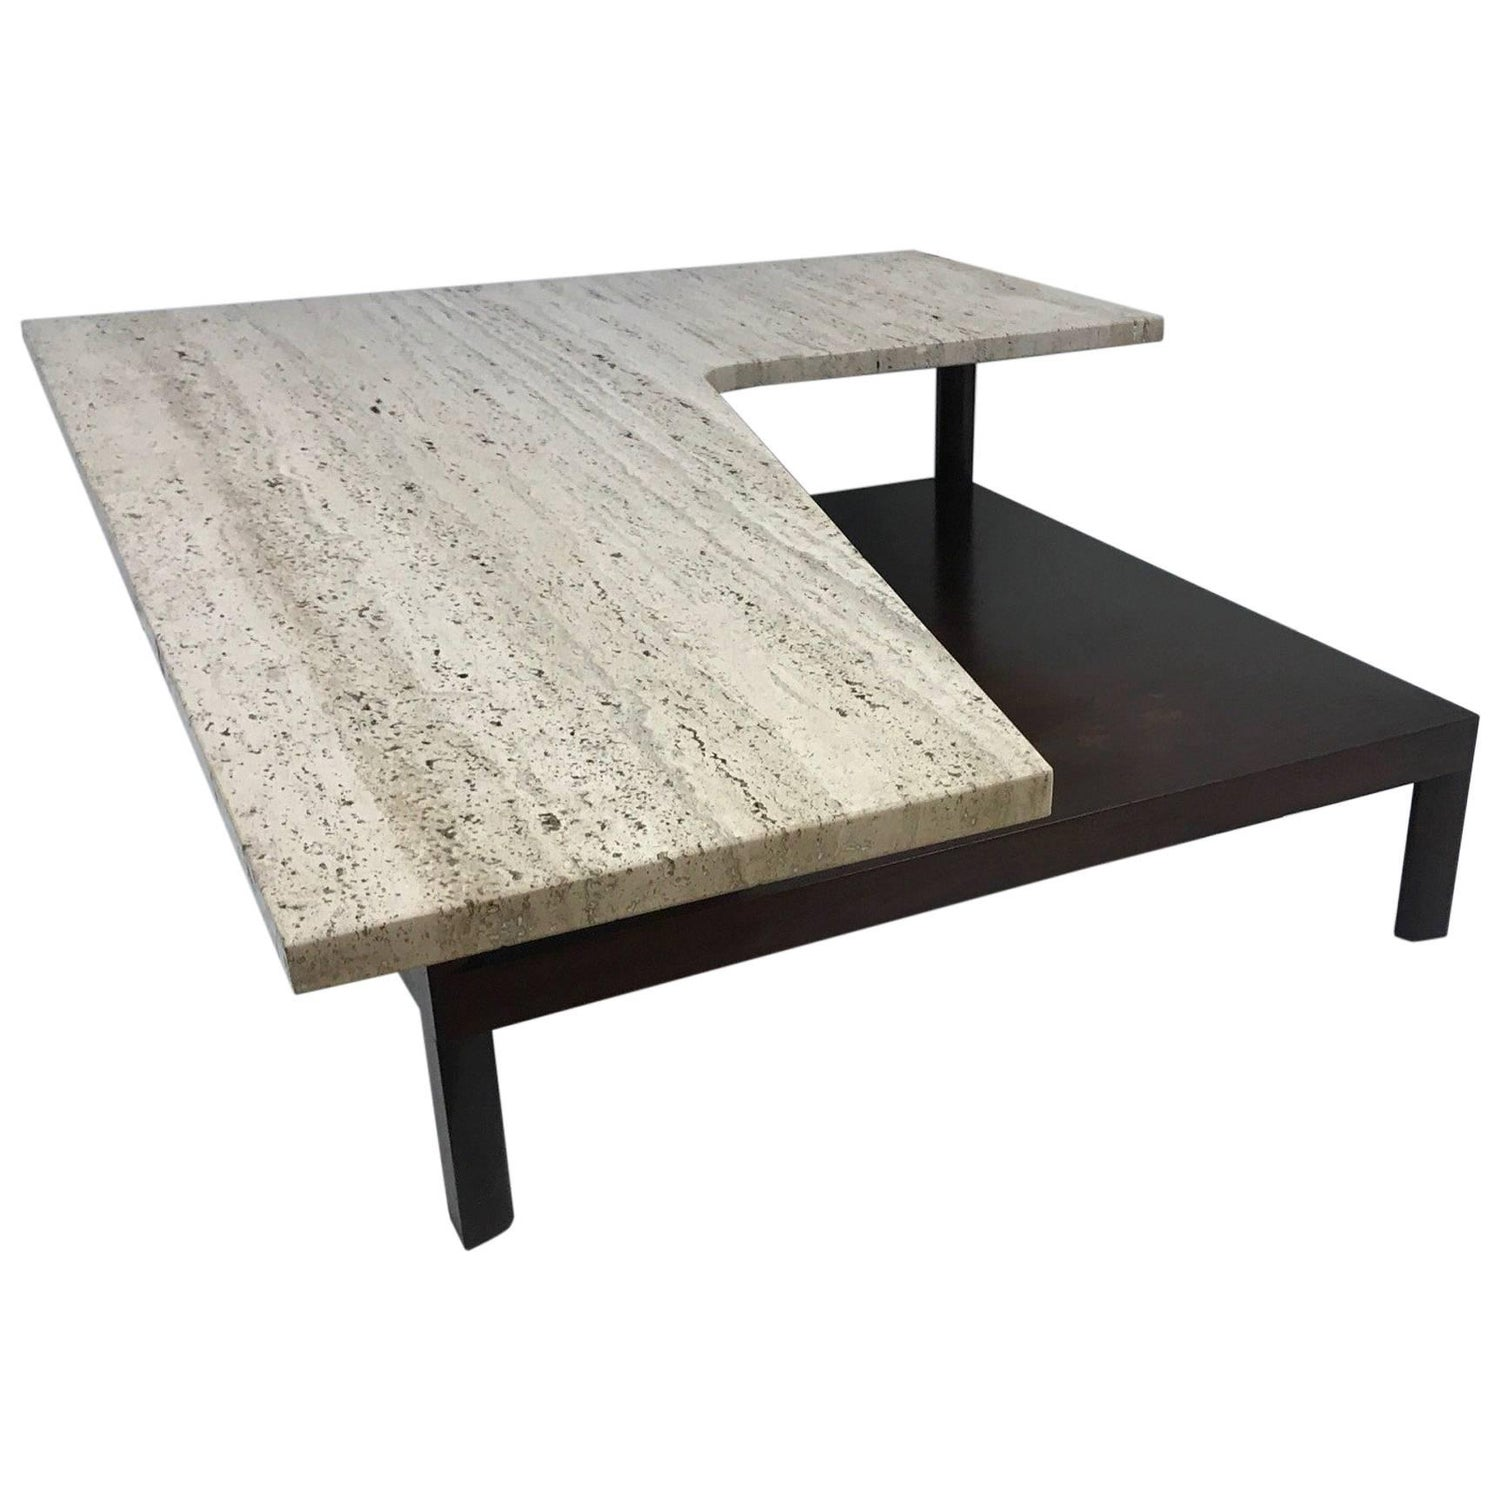 Limestone Coffee and Cocktail Tables 195 For Sale at 1stdibs